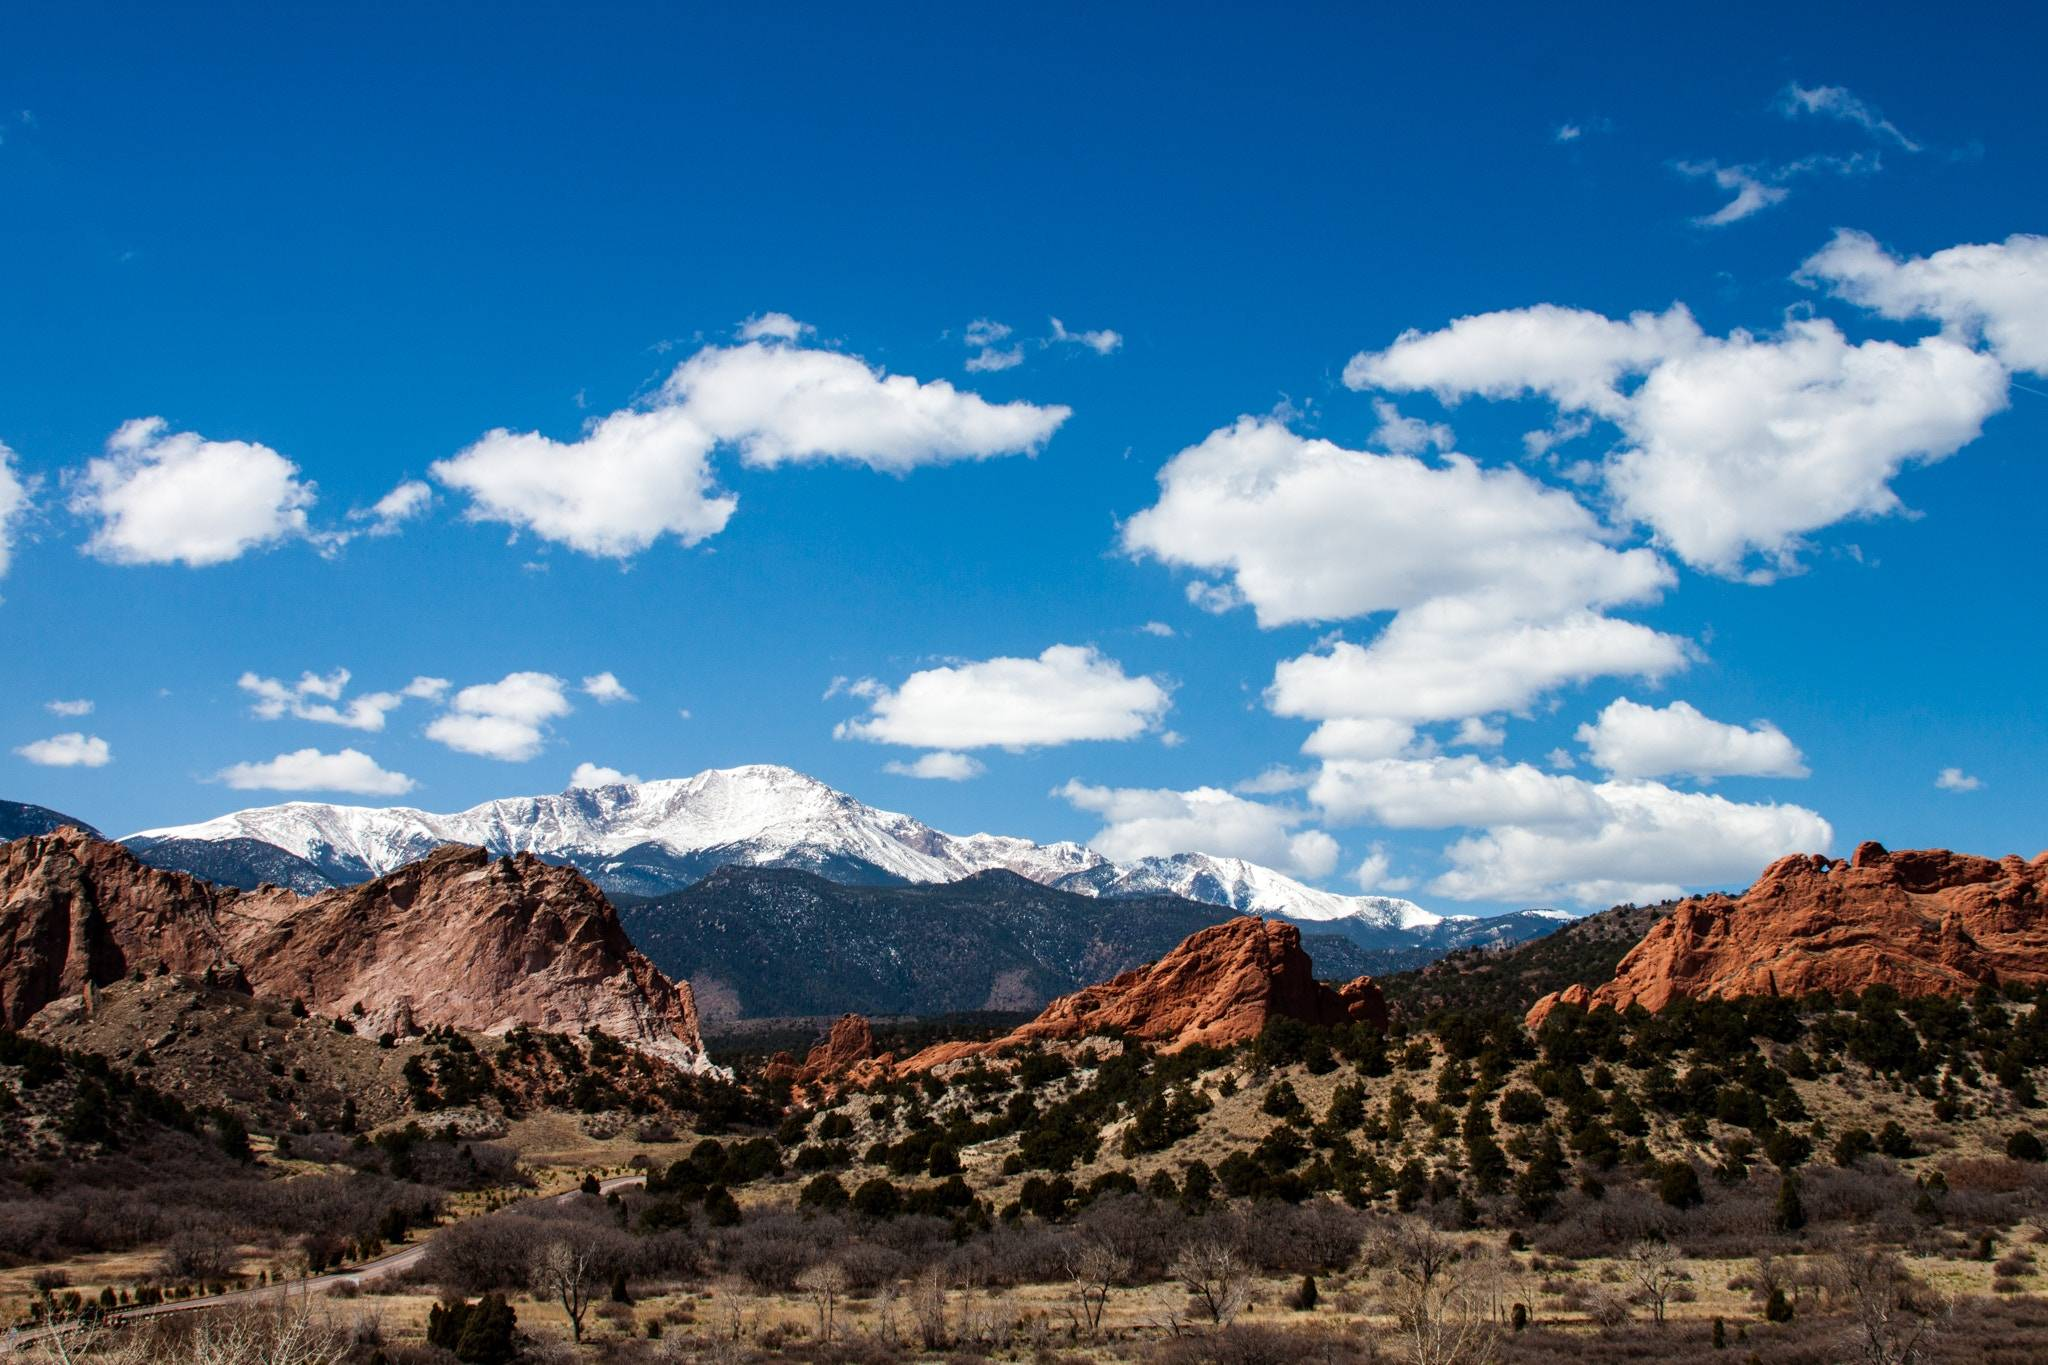 Things to do in Colorado: Snow-capped rocky mountains in distance with reddish rock in foreground in Colorado.